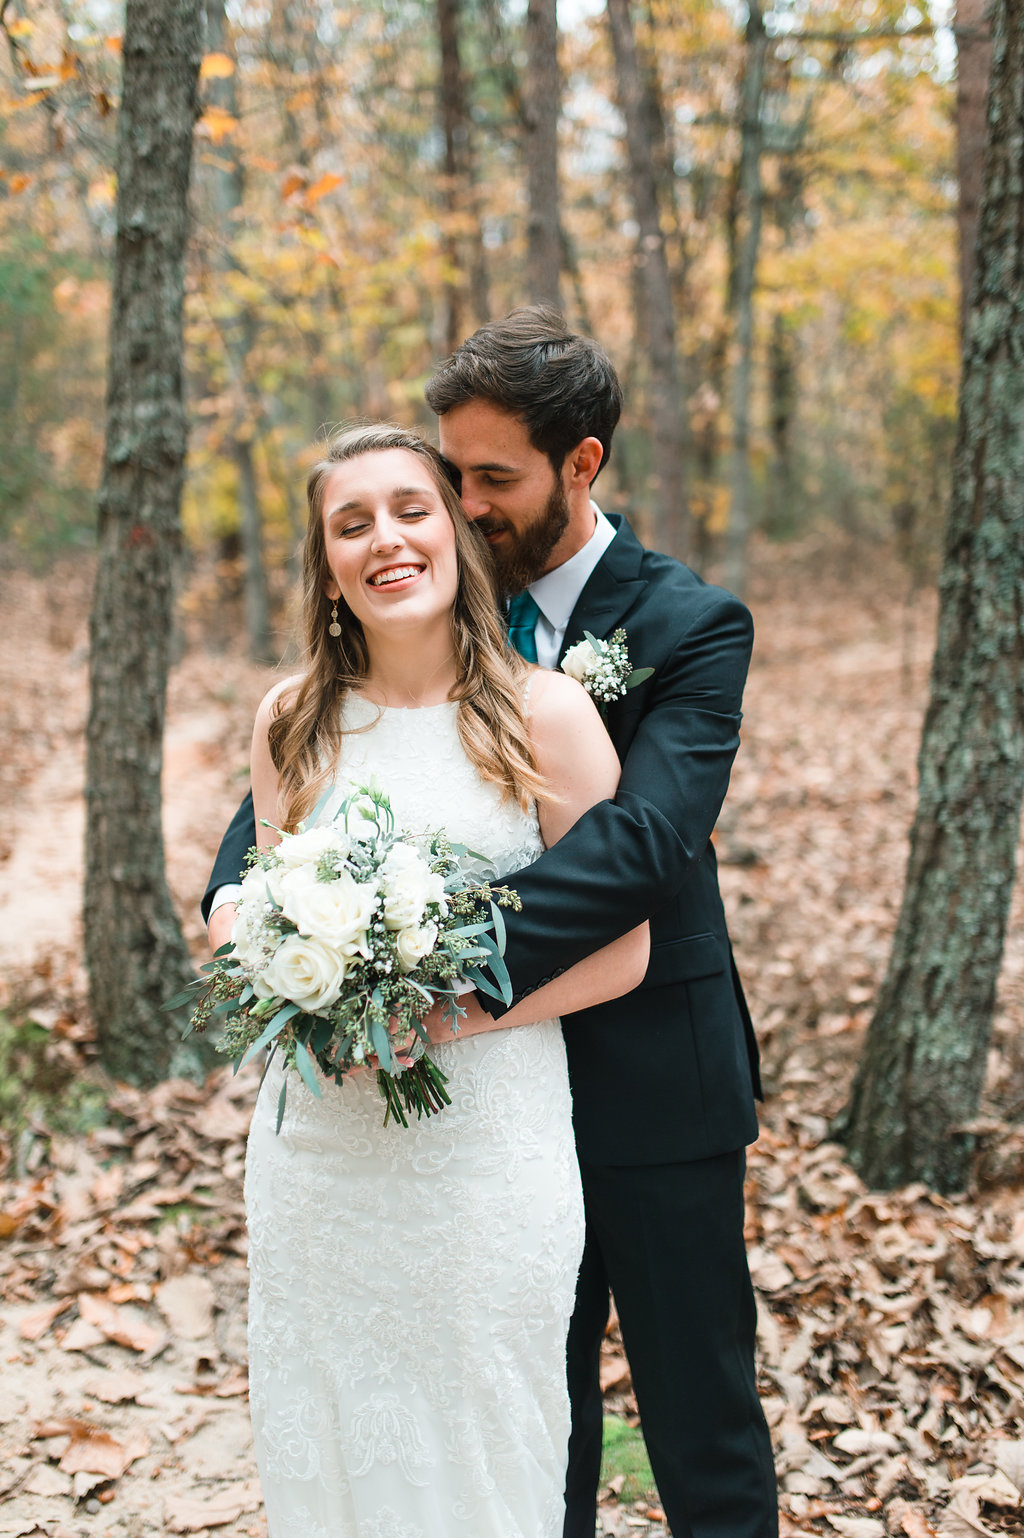 A North Georgia Outdoor Elopement - The Overwhelmed Bride Wedding Blog